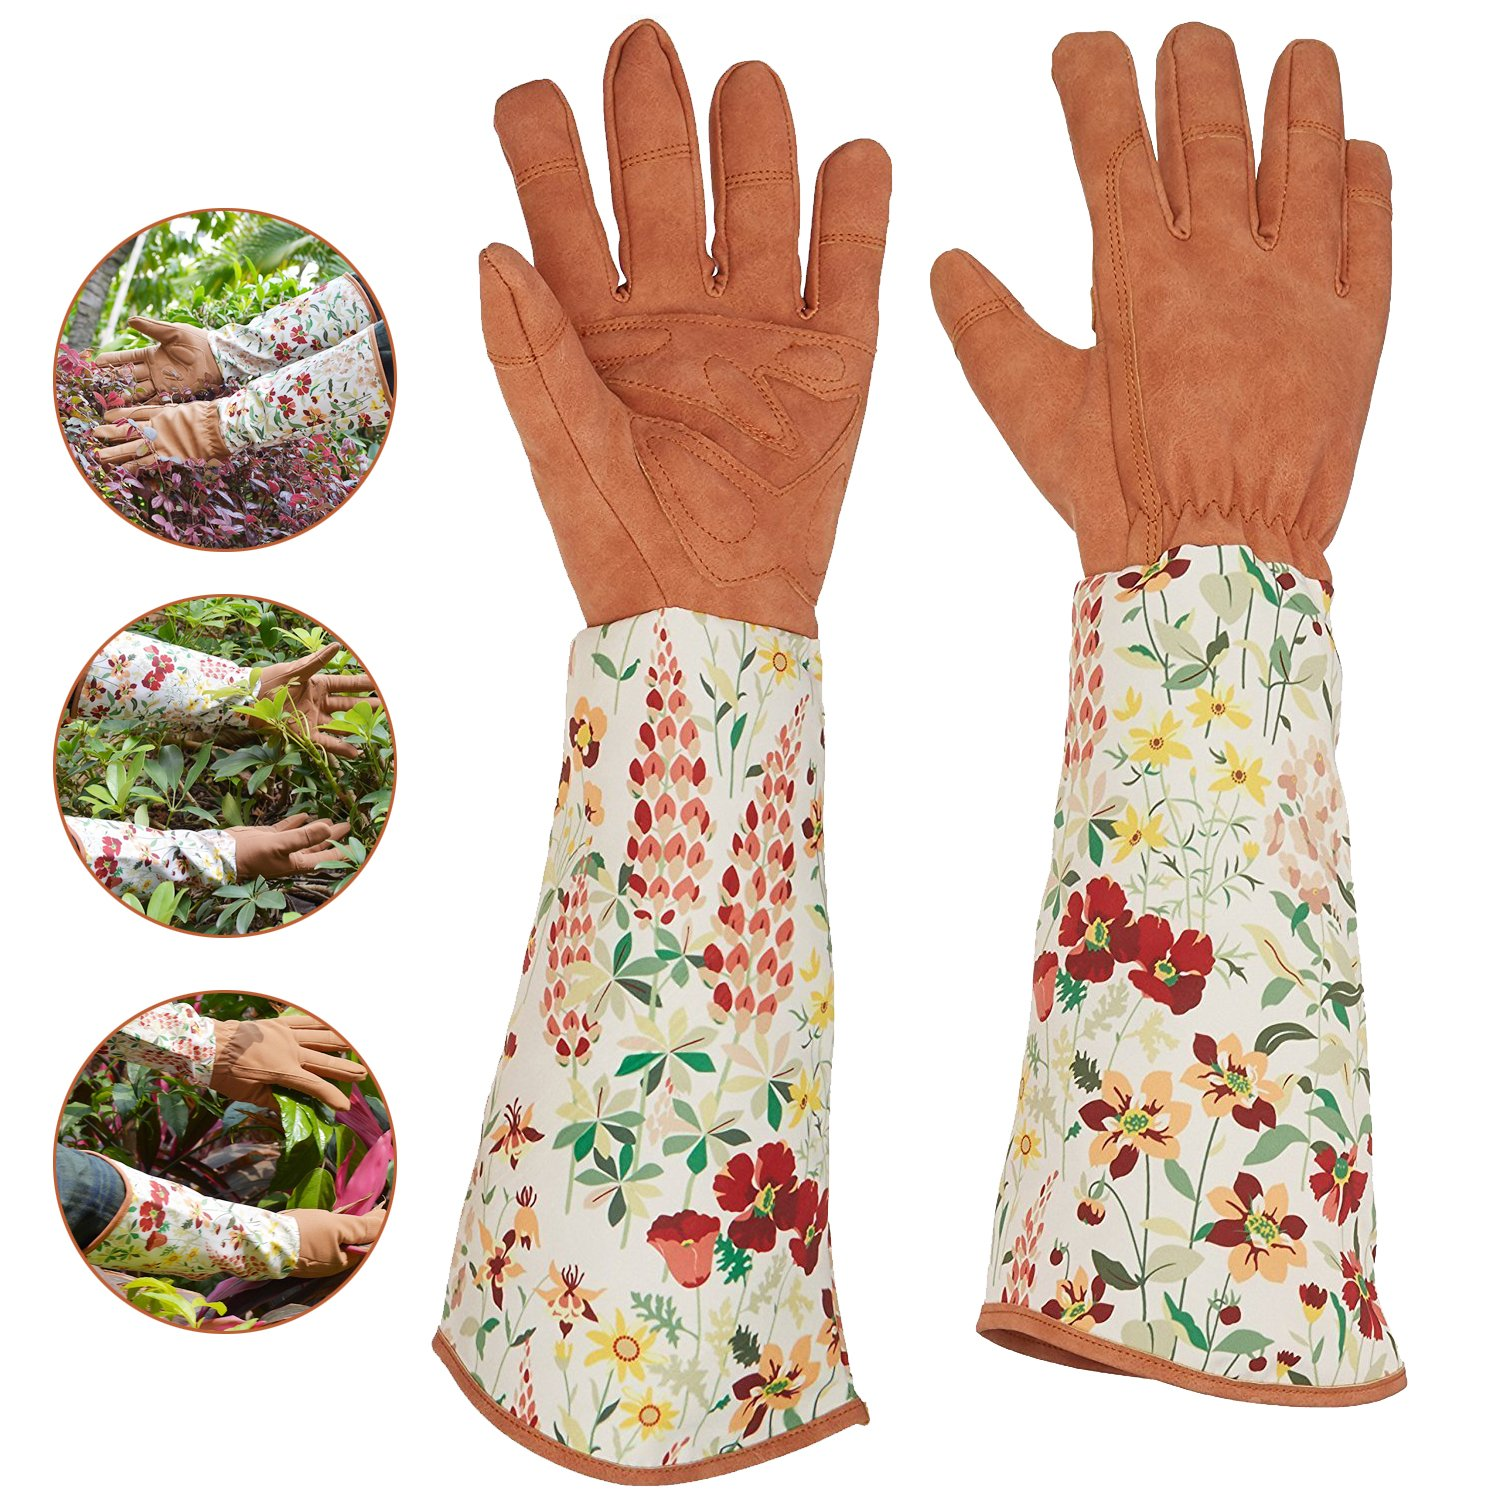 Ruibo Leather Rose Gardening Gloves/Thorn Proof Pruning Gloves With Puncture Resistant Long Sleeve Polyester Print Cuff/For Blackberry Plants Rose Bush Women